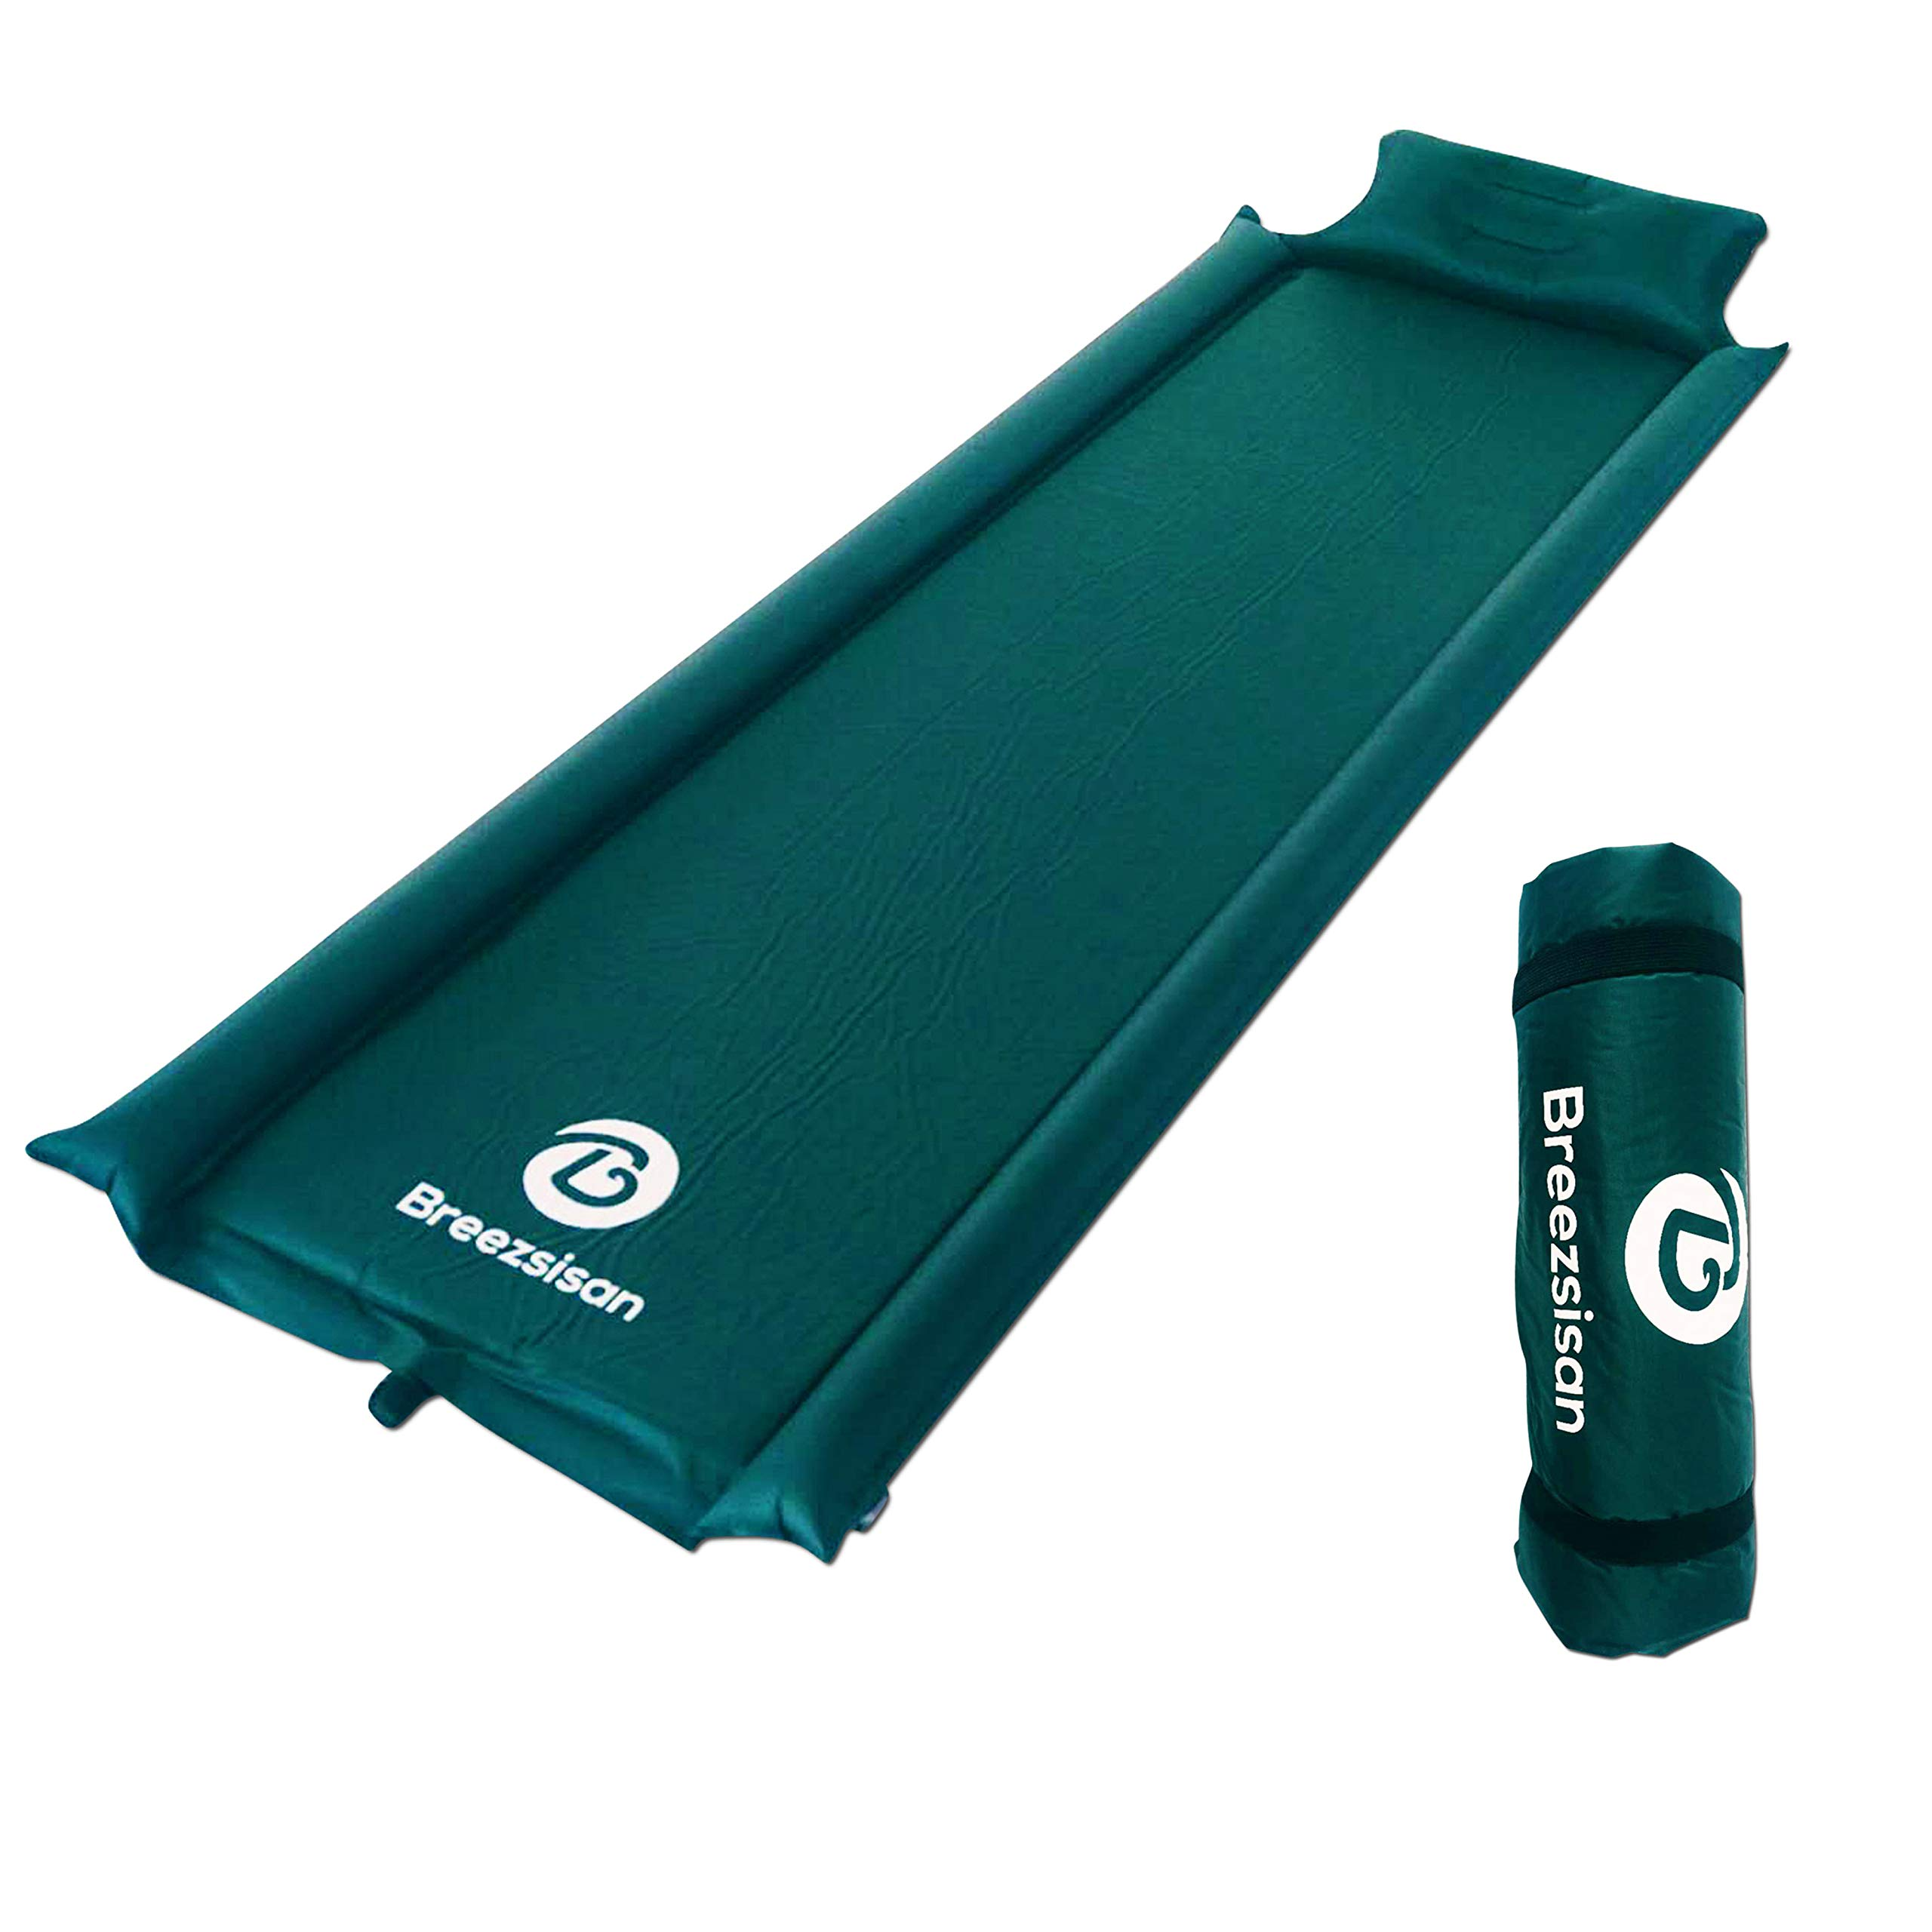 Breezsisan Camping Sleeping Pad. Self Inflating Foam Pads with Attached Pillow for: Outdoor, Backpack, Hiking, Hammock, Cot -4 Season- Youth Gift-Inflatable Queen Size Bed-Light Indoor Air Mattress by Breezsisan